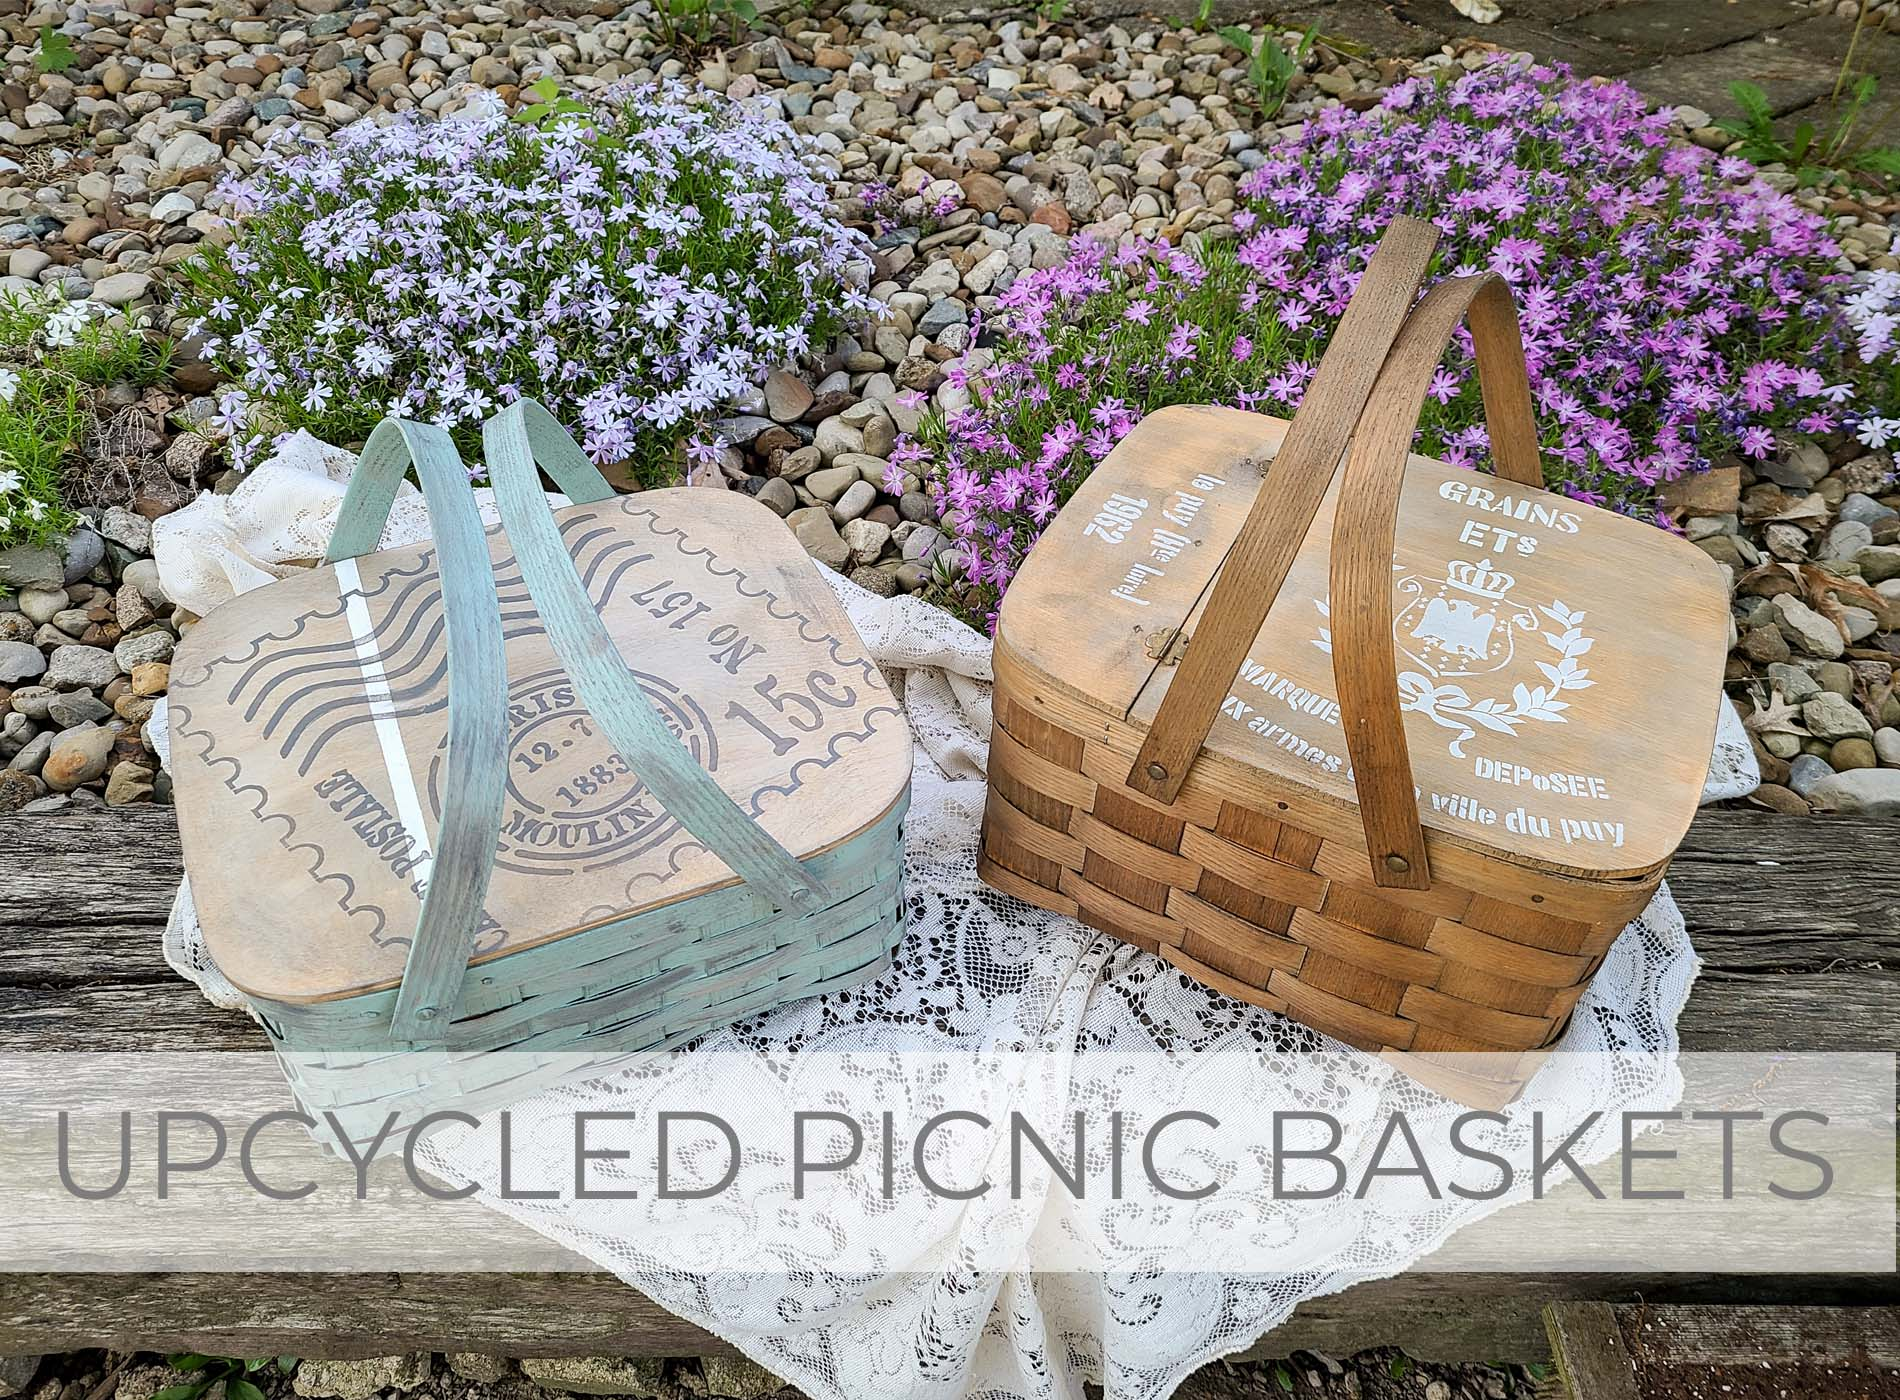 Upcycled Picnic Baskets by Larissa of Prodigal Pieces | prodigalpieces.com